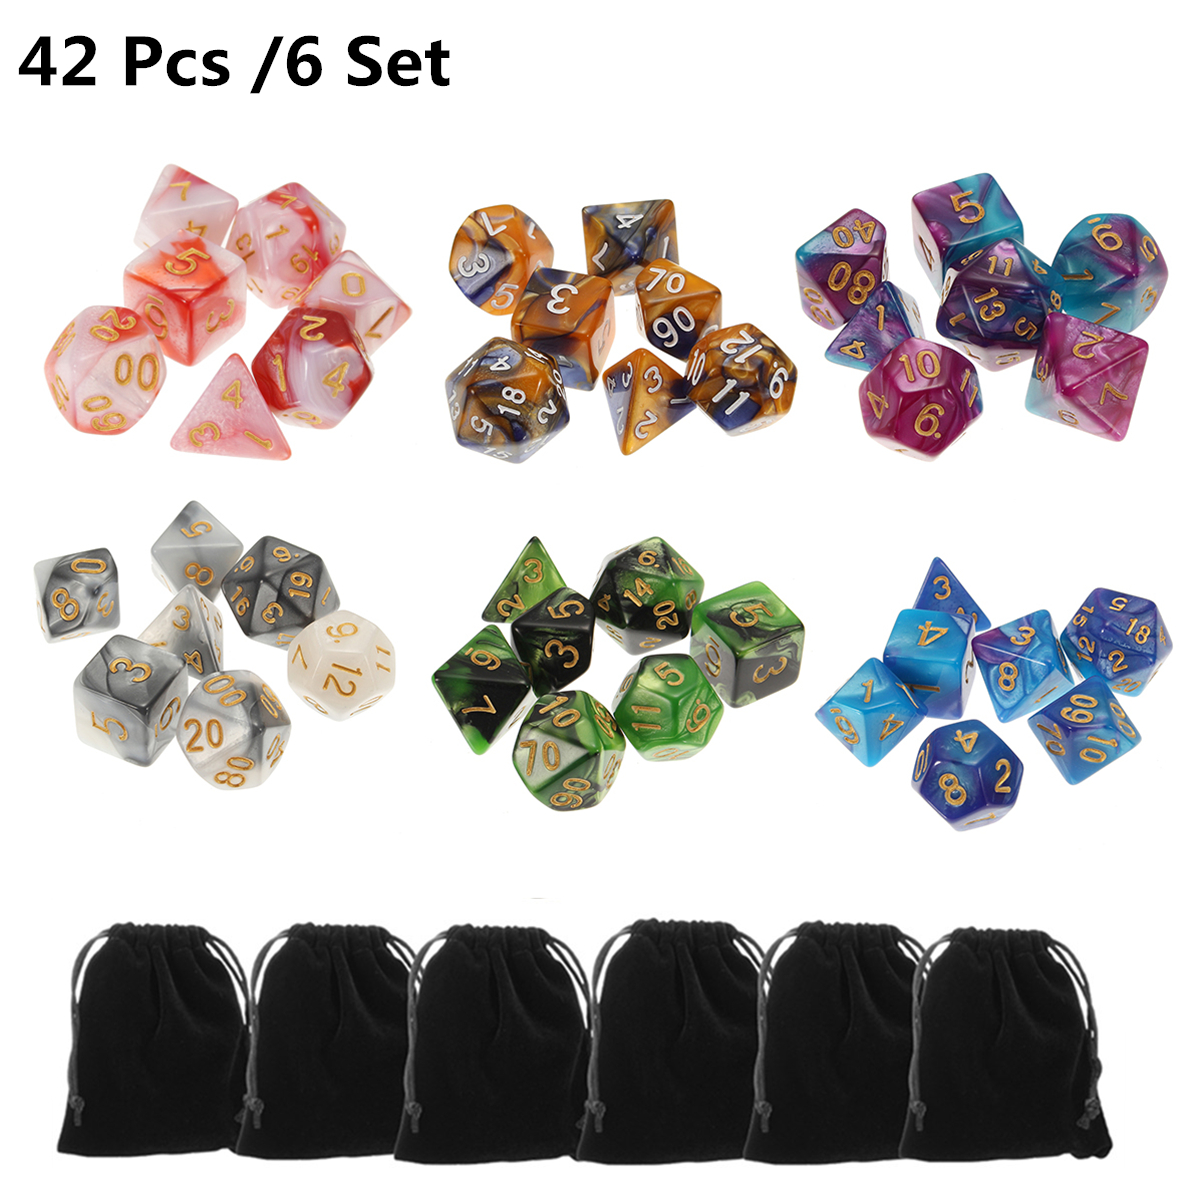 42 Polyhedral Dice | 6 Sets of Dice for Dungeons & Dragons, Pathfinder, and a wide variety of tabletop games and RPG's.